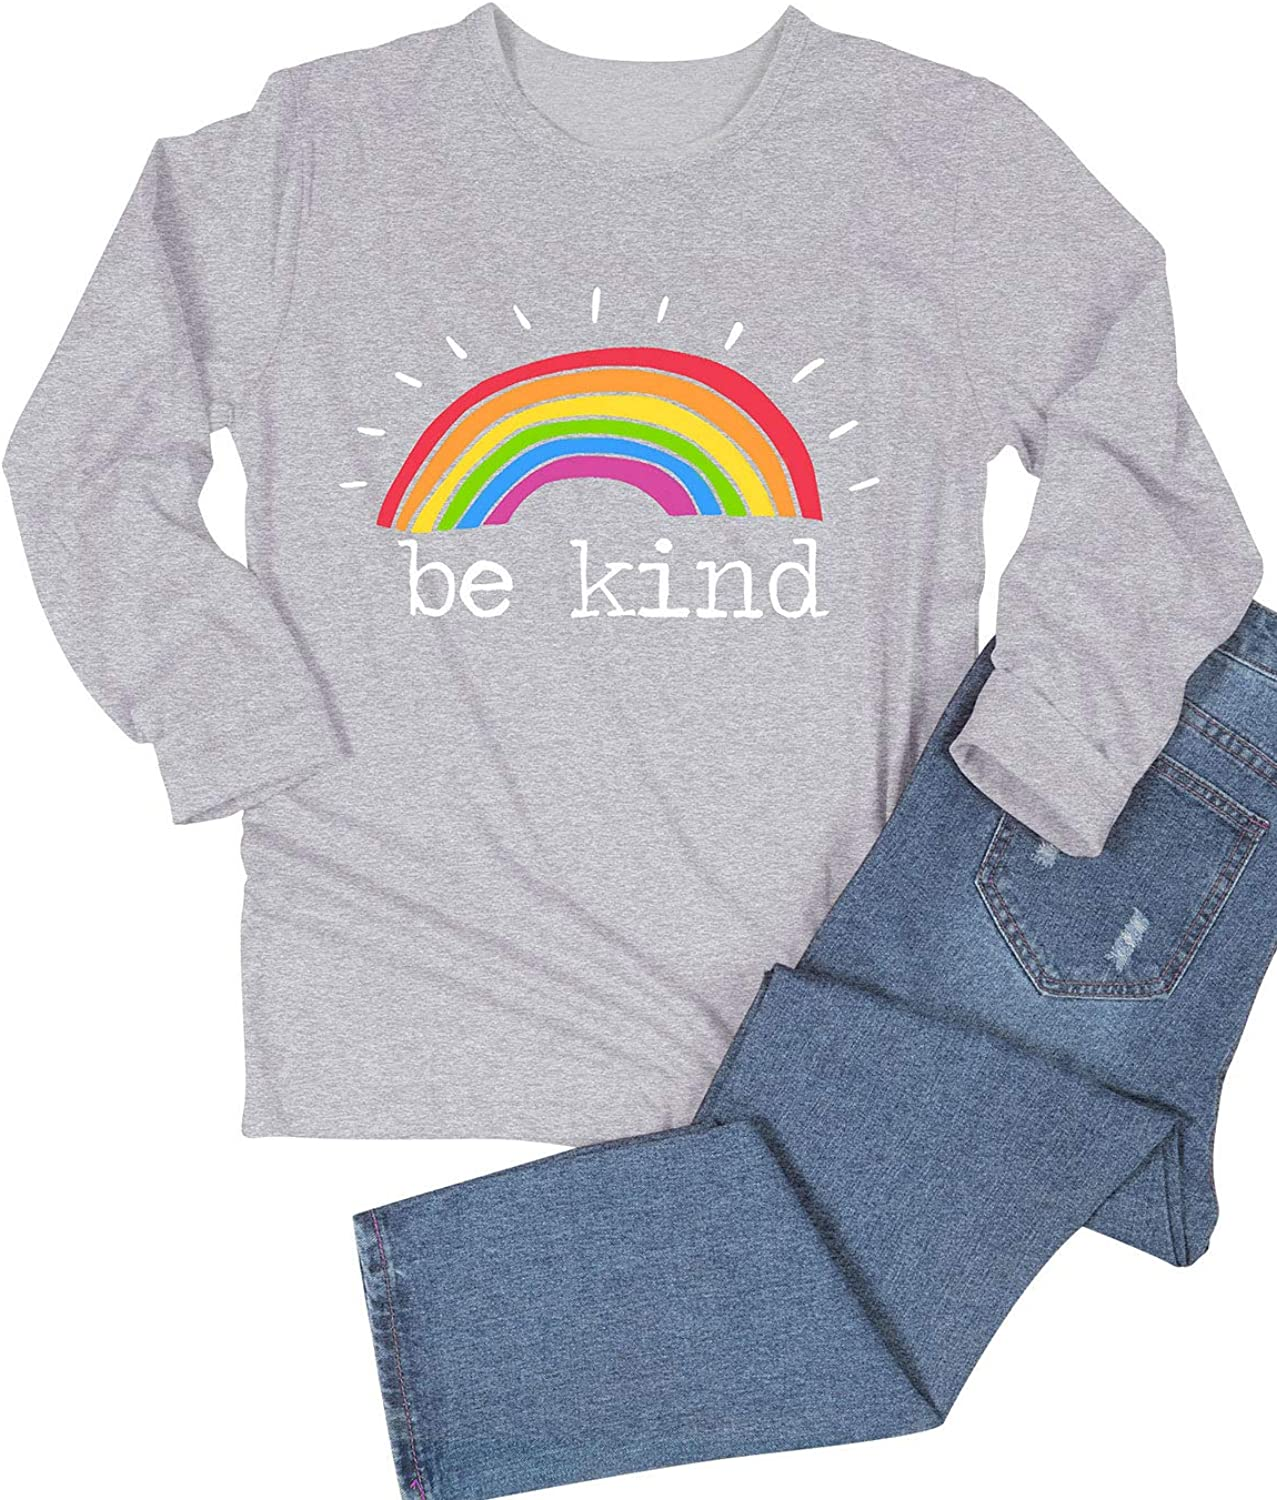 Dresswel Women Be Kind Pullover Rainbow T Shirt Long Sleeve Tops Crew Neck Jumpers Blouse